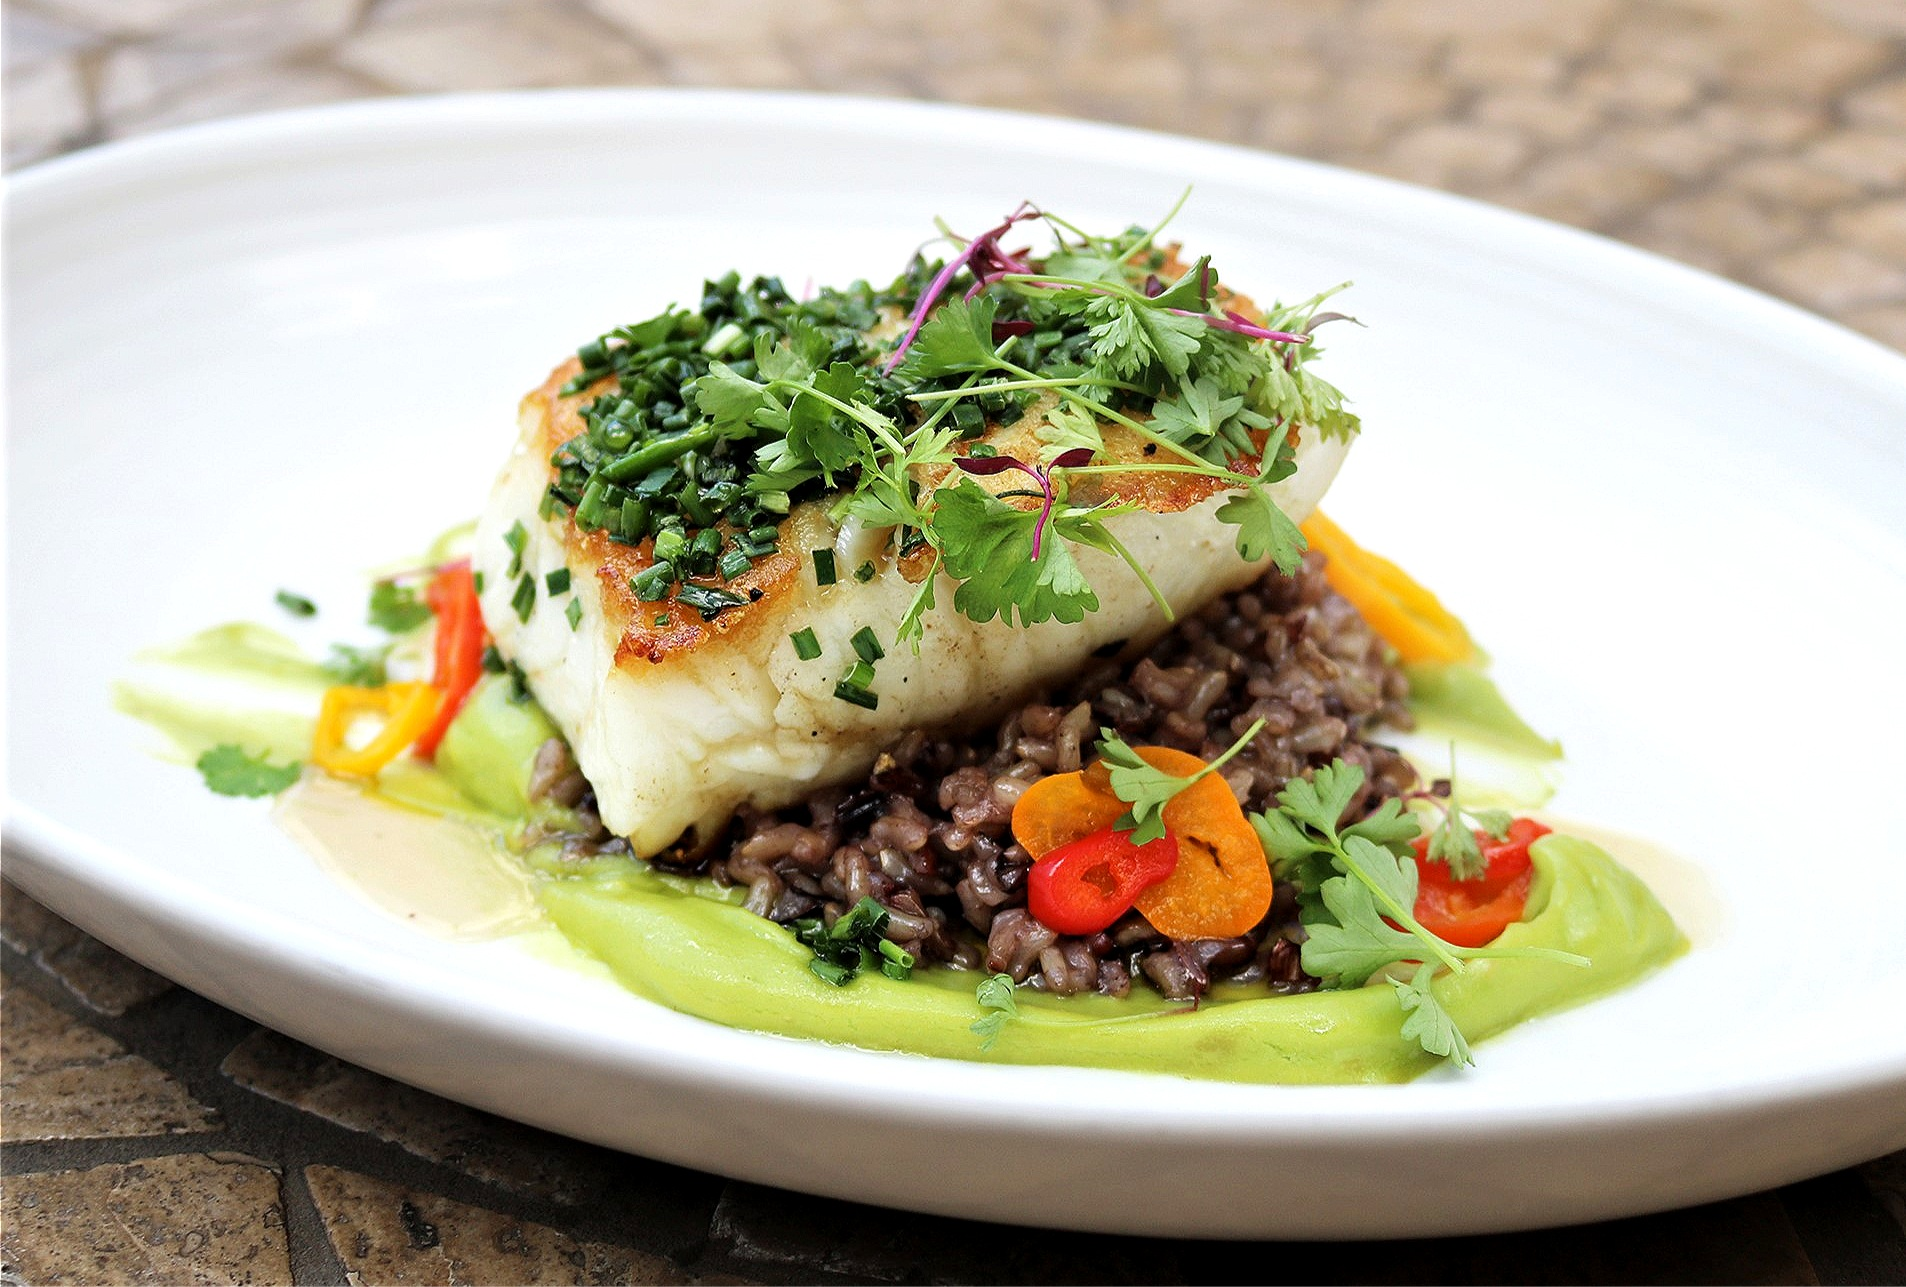 Sea Bass with Ancient Grain Risotto, Avocado Puree, Pickled Fresno Chili Citrus-Honey Reduction